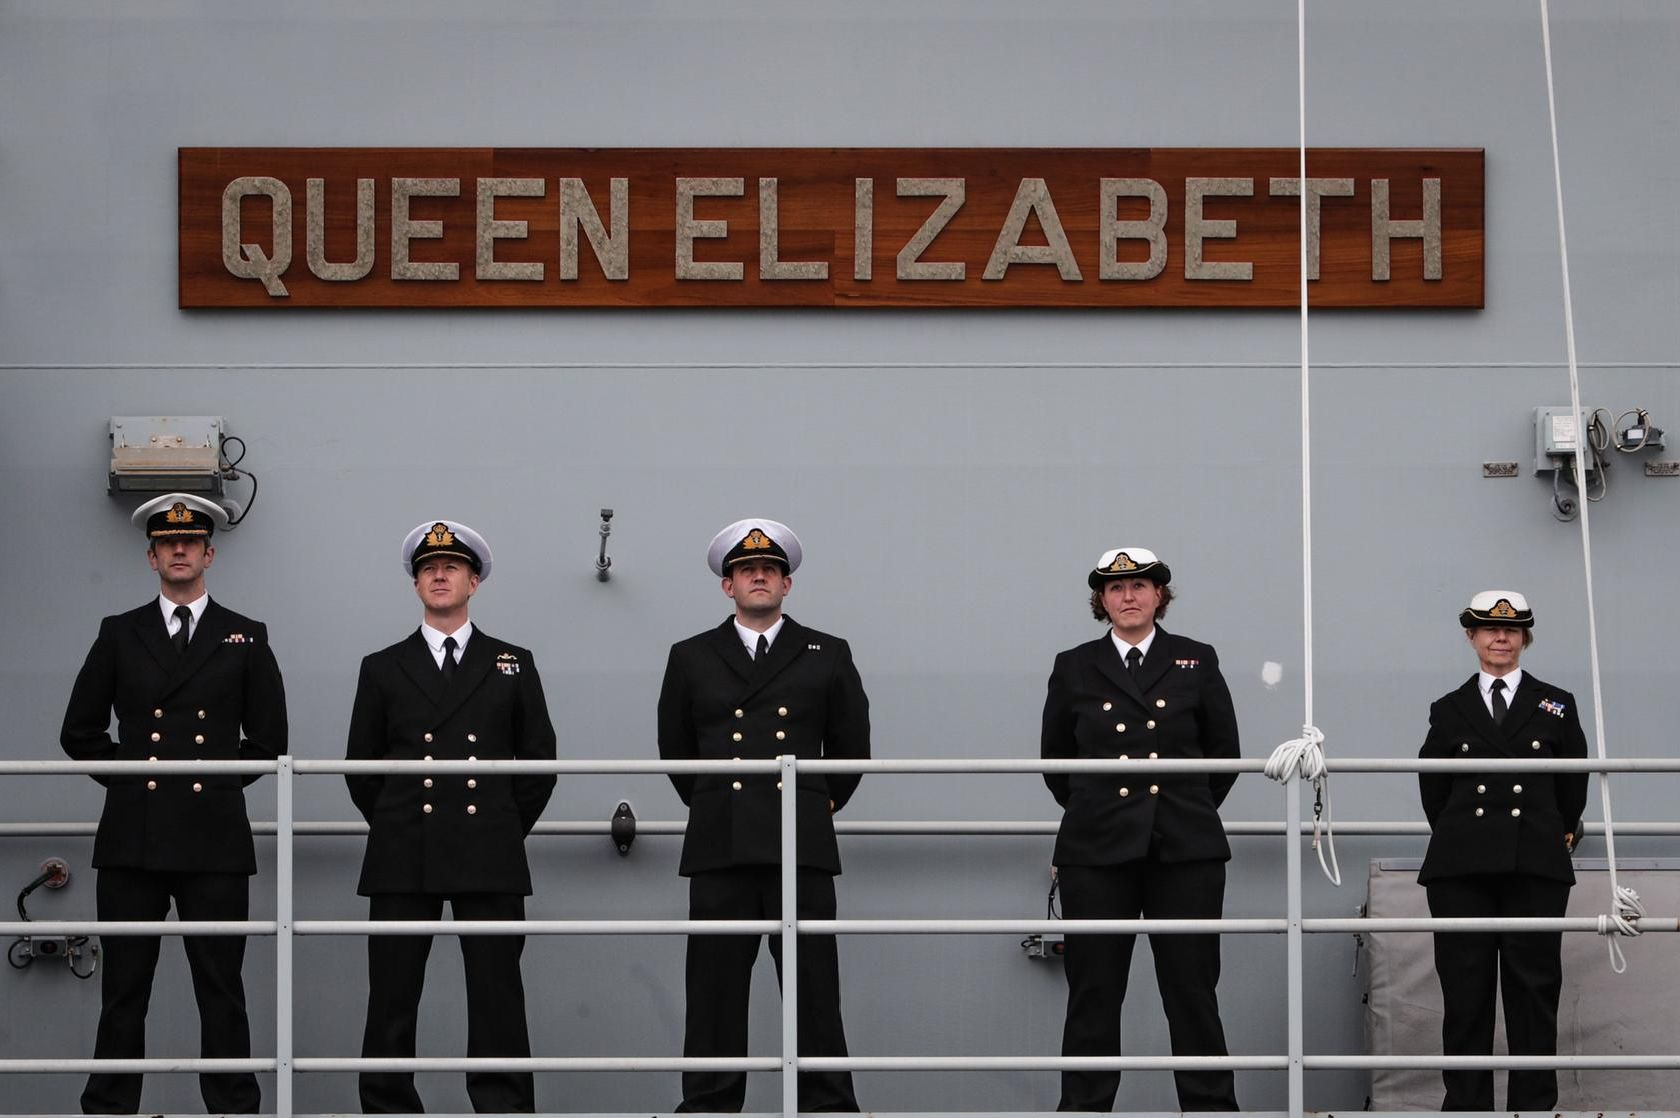 The UKs new aircraft carrier, HMS Queen Elizabeth arrives in Halifax, Nova Scotia this morning, in an historic first visit.